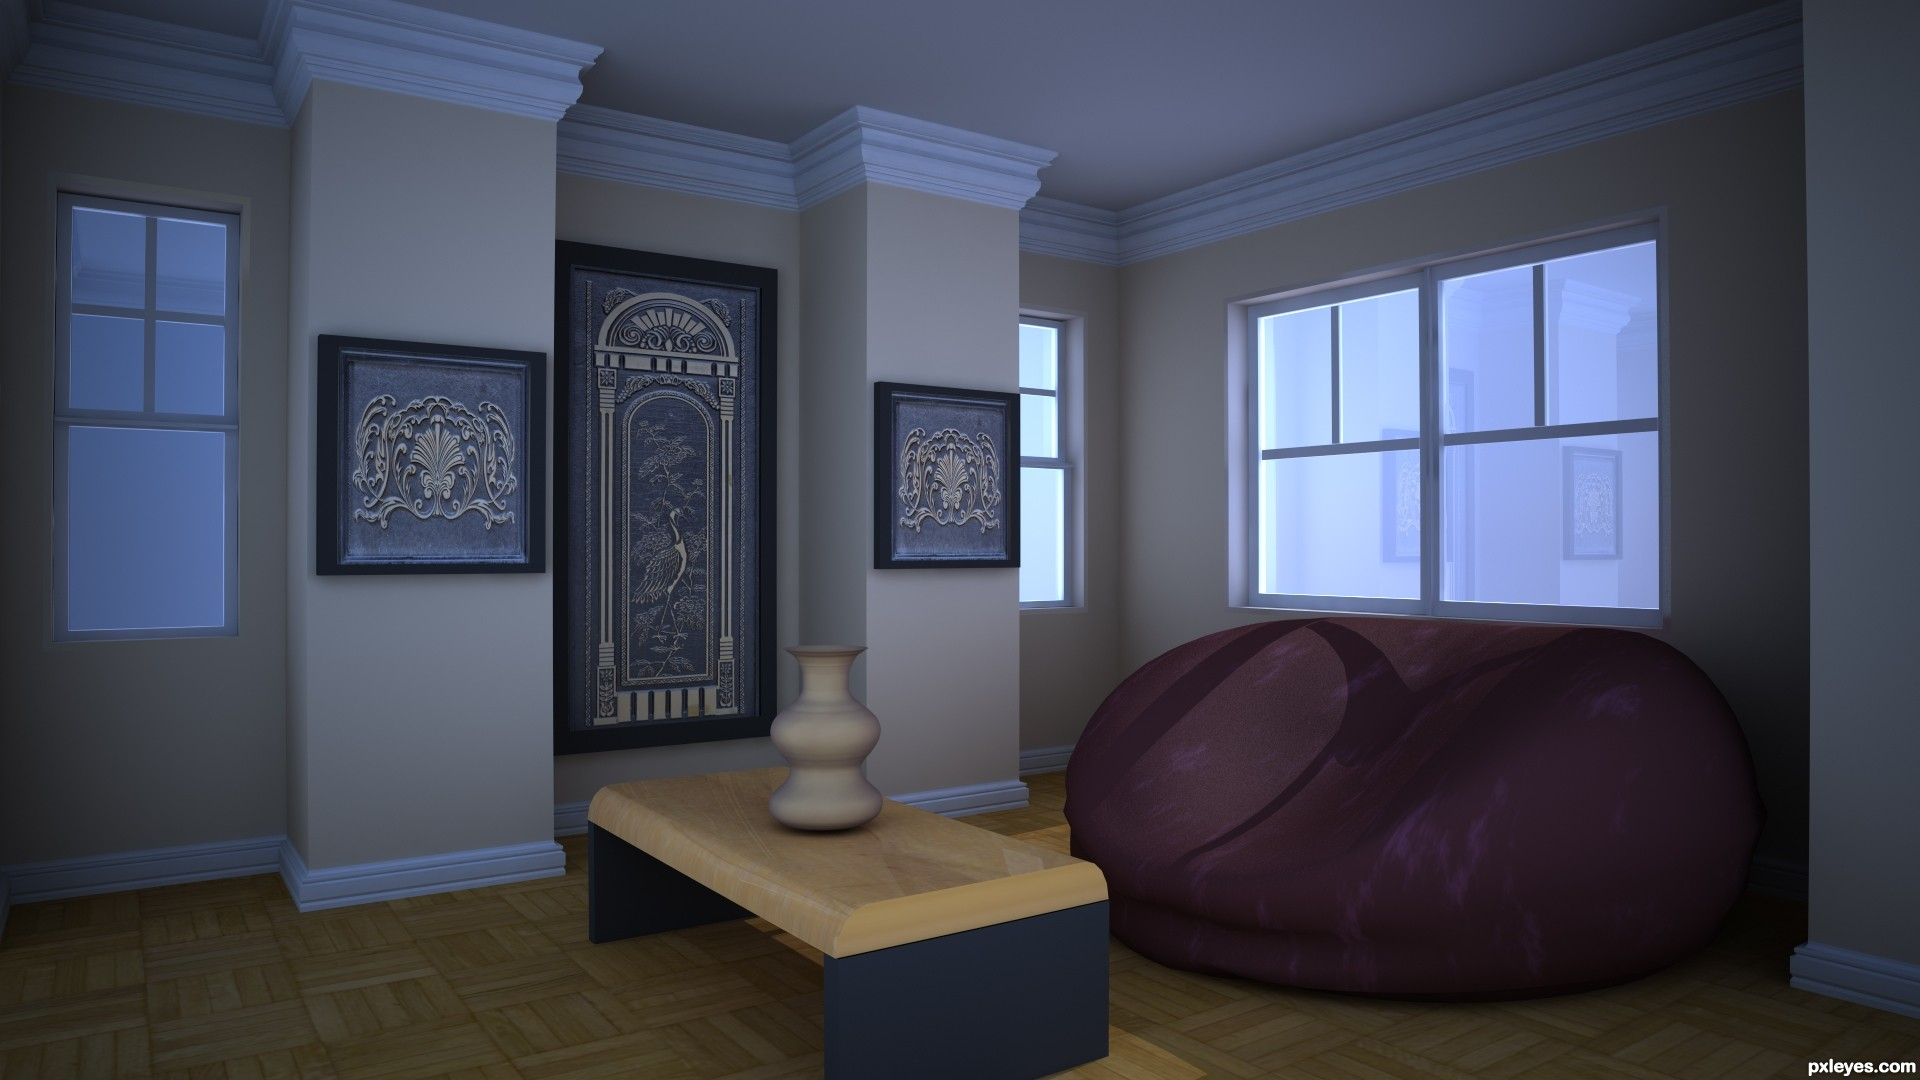 Cozy and elegant living room picture by preonline for - Cozy elegant living rooms ...